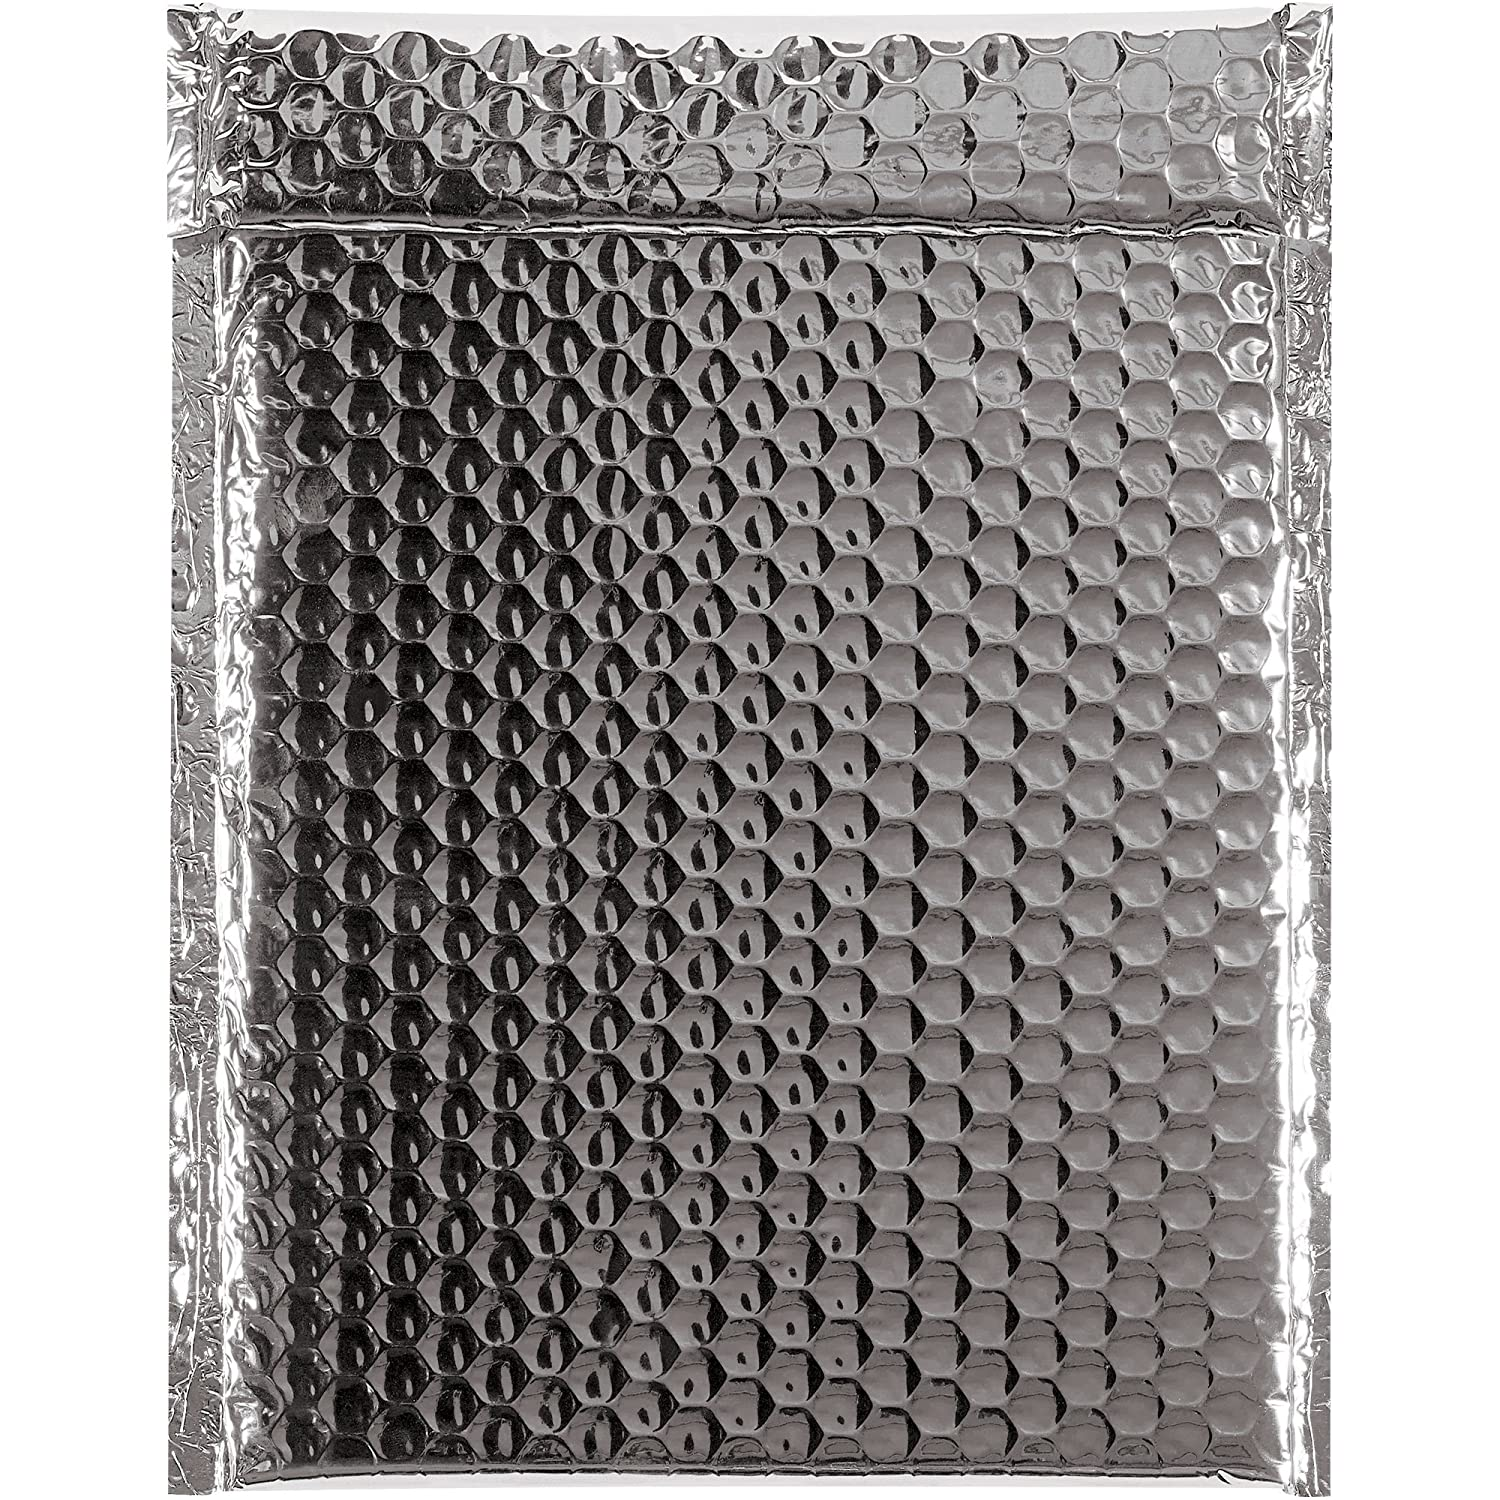 Inexpensive store Glamour Bubble Mailers 9